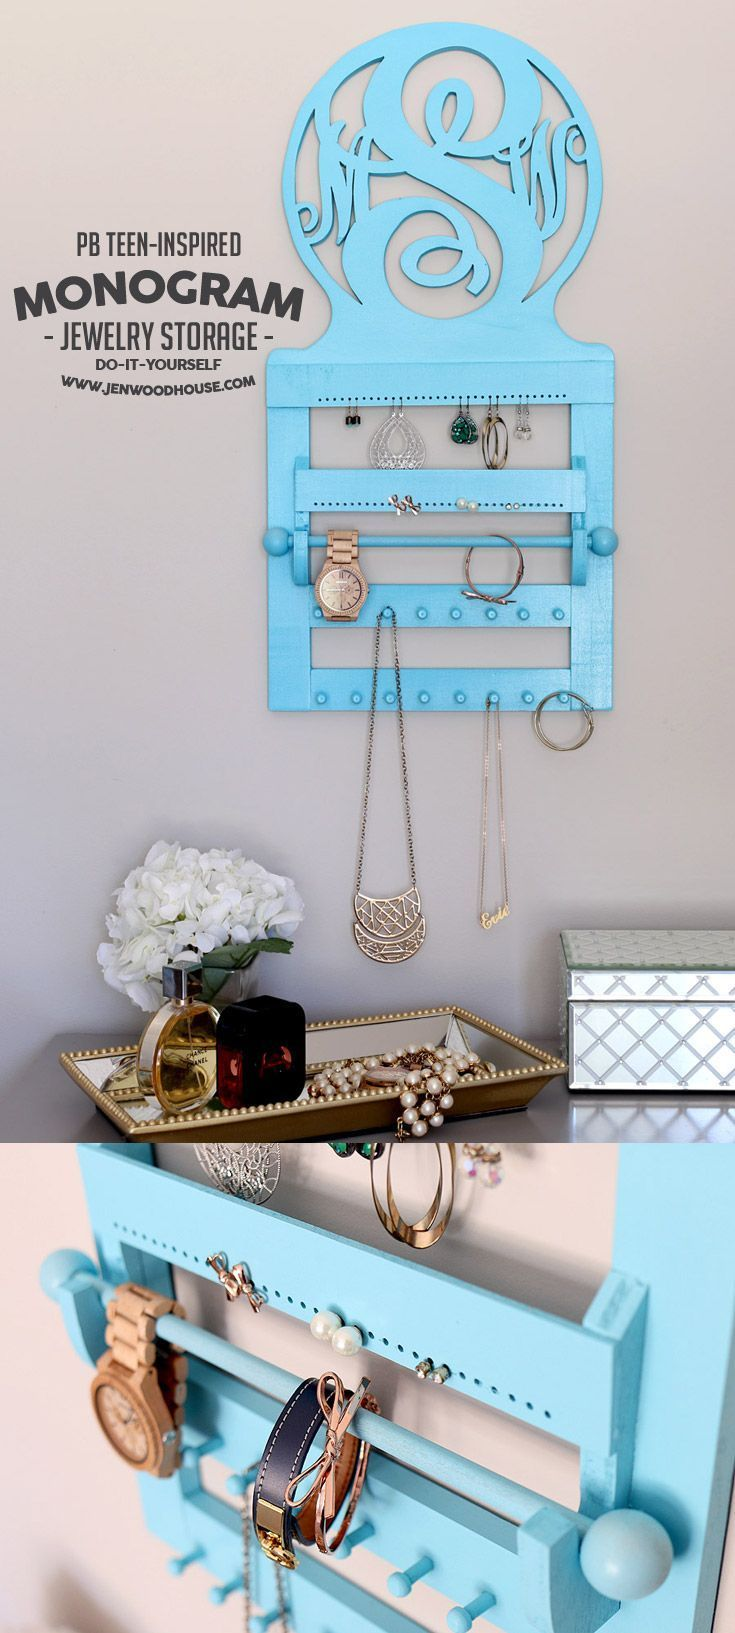 How to build a DIY Pottery Barn Teen-inspired Monogram Jewelry Storage via Jen Woodhouse